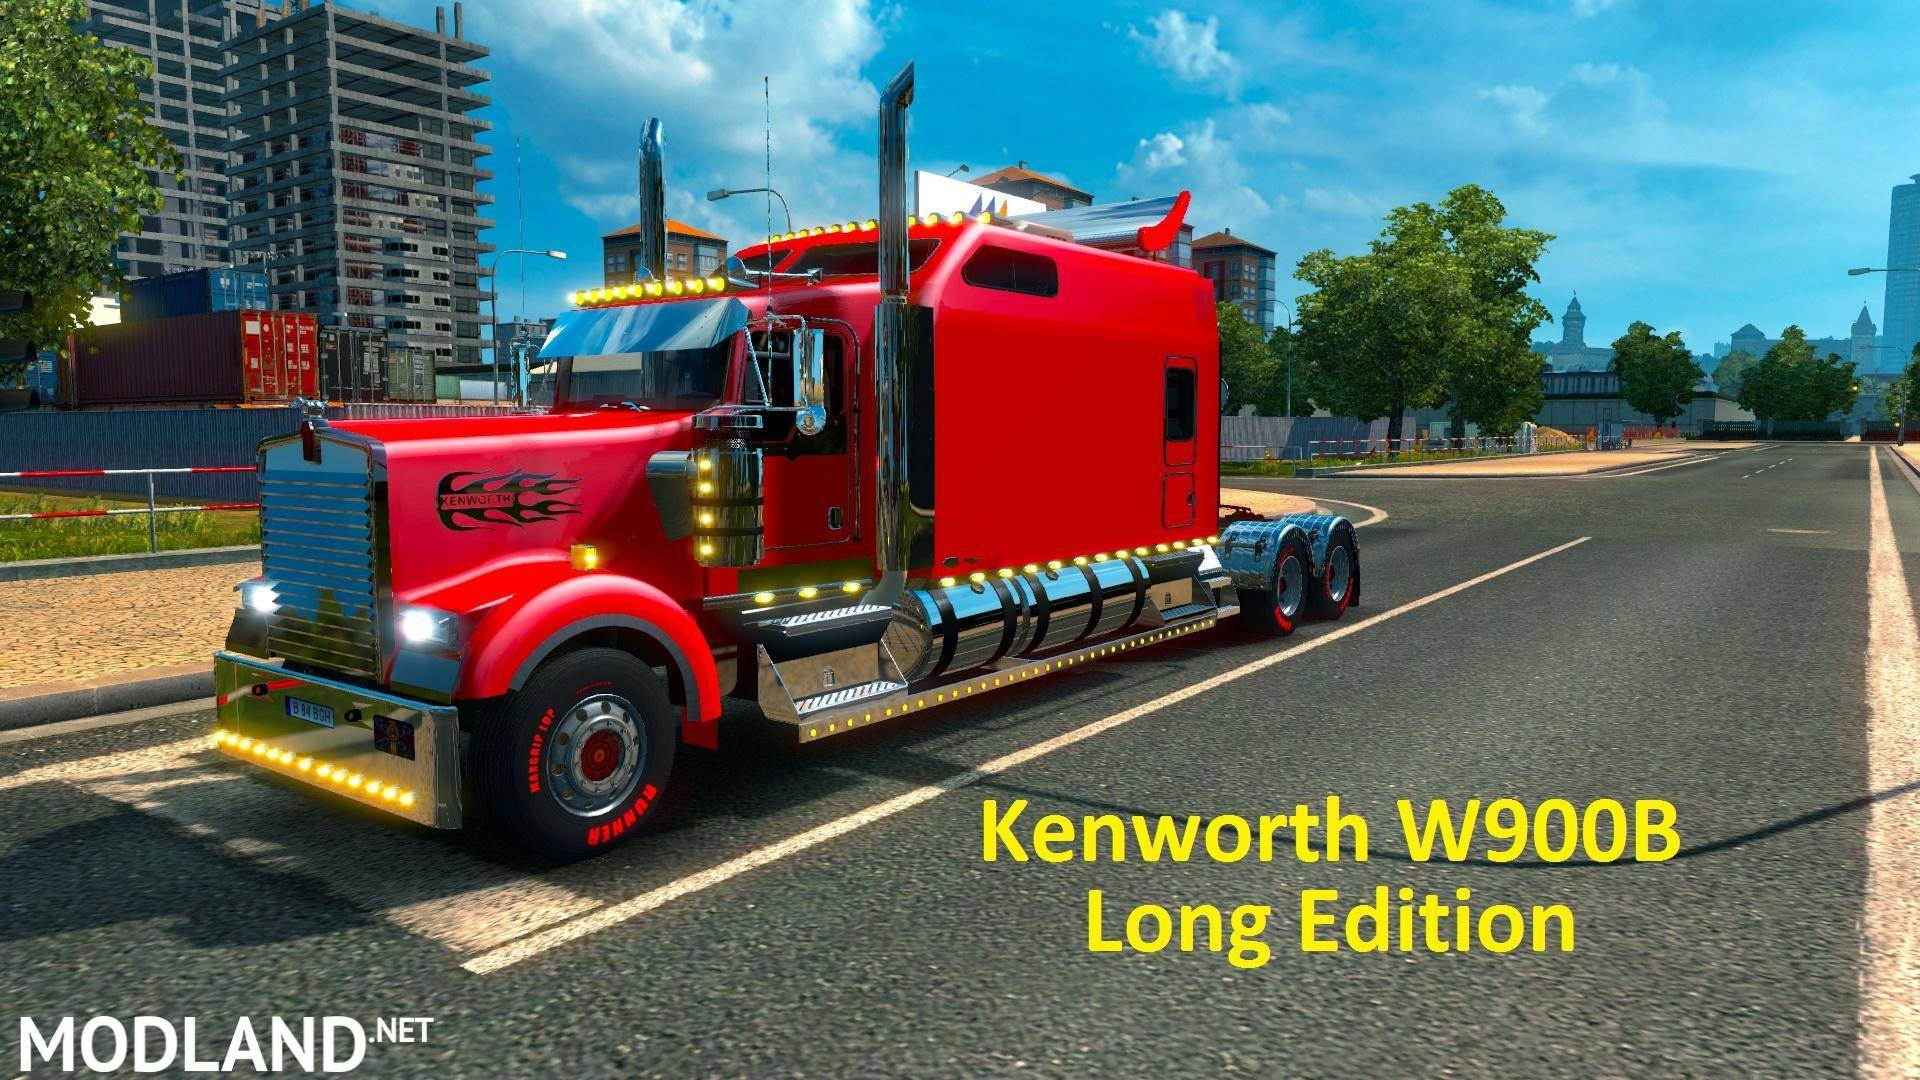 Kenworth w900b long edition fixed by h trucker 1 photo